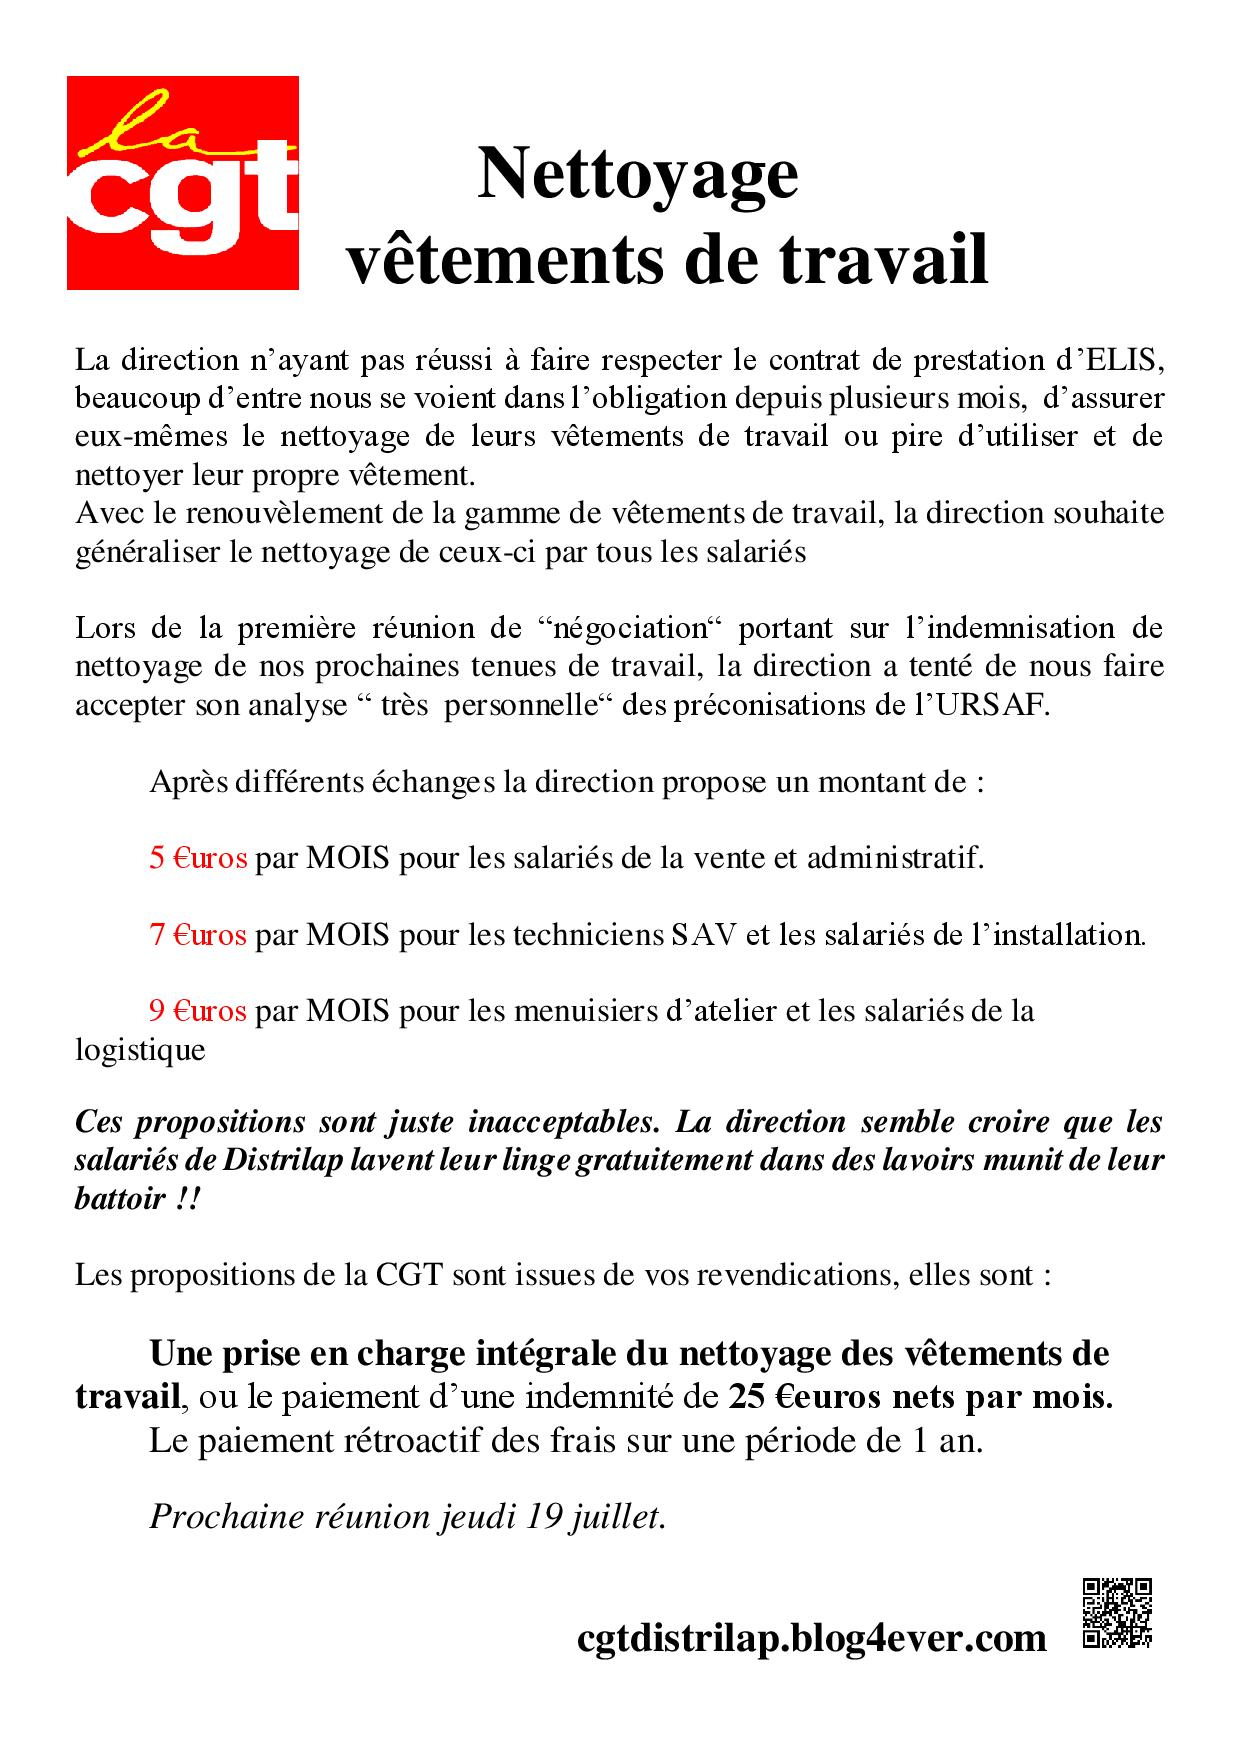 tract nego vetement 2-page-001.jpg